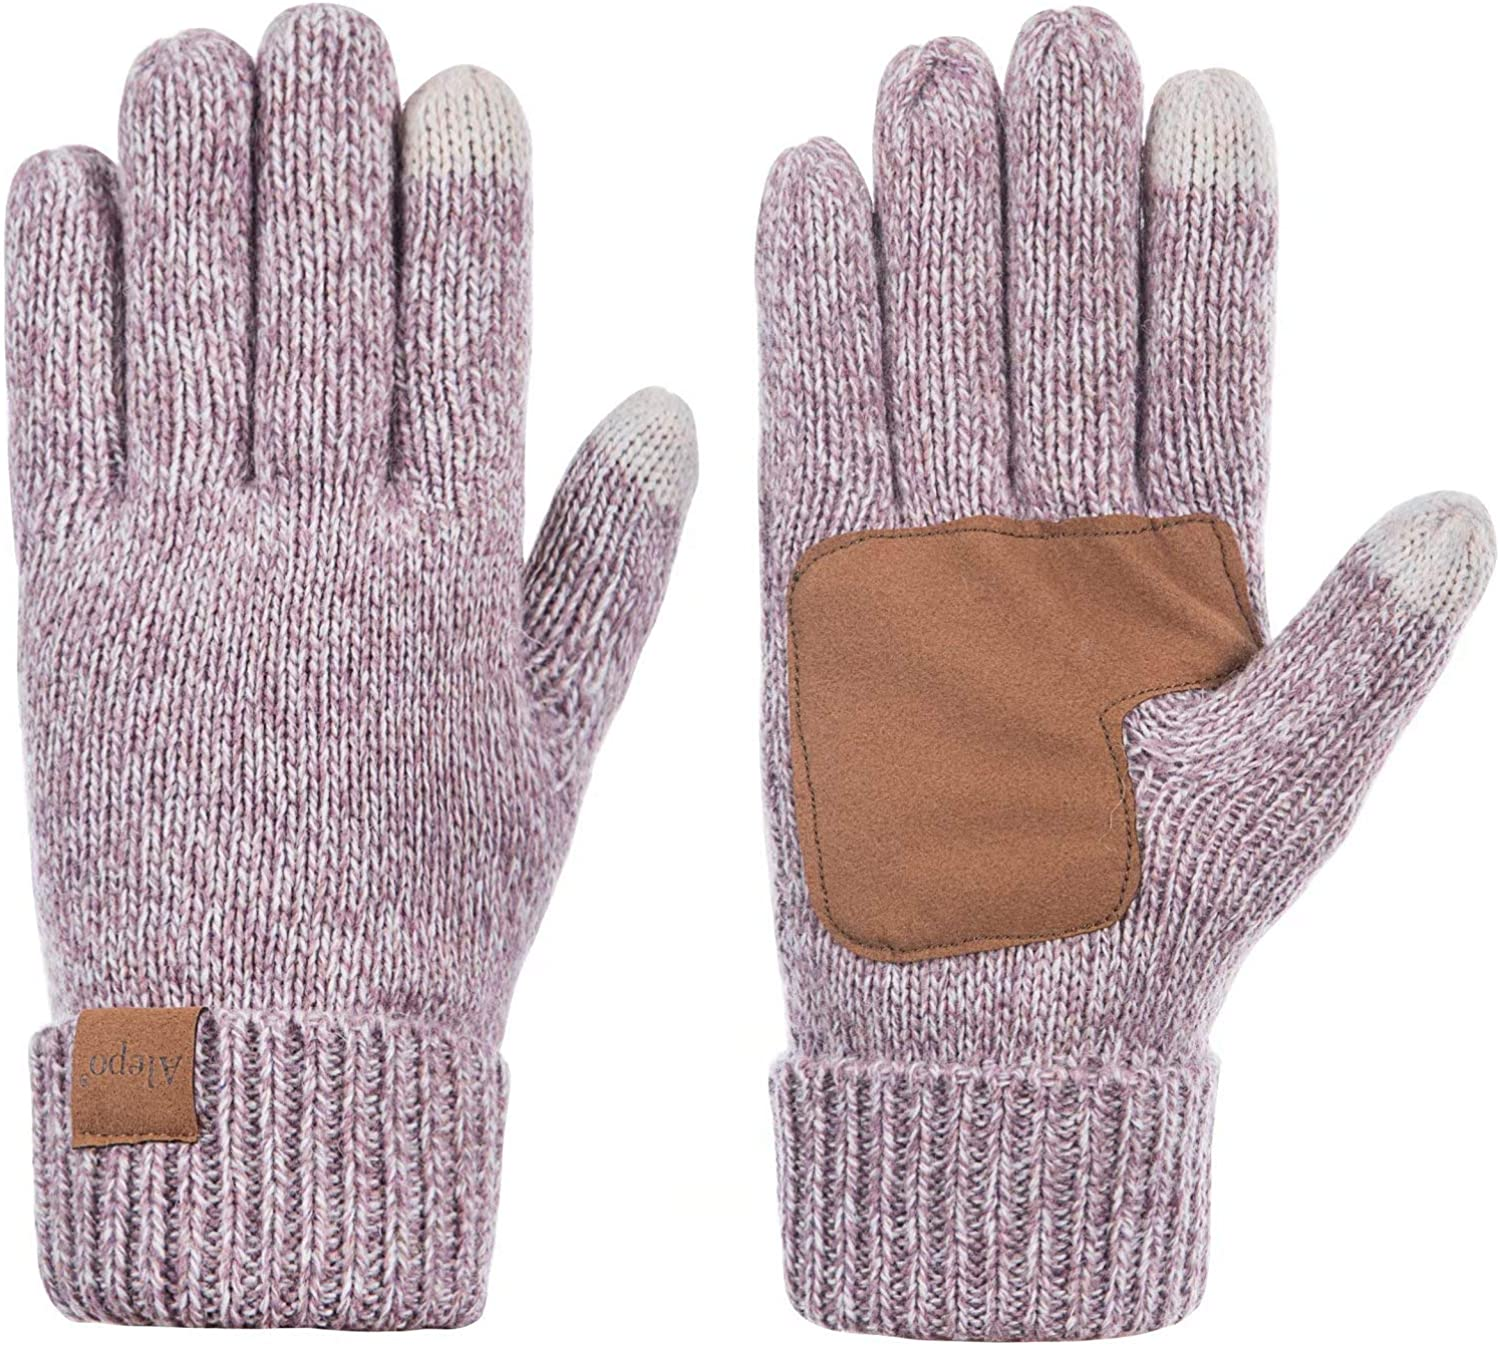 Anti-Slip Knit Touchscreen Cuff Warm Unisex Driving Gloves With Thick Fleece Lining Winter Wool Gloves For Women And Men